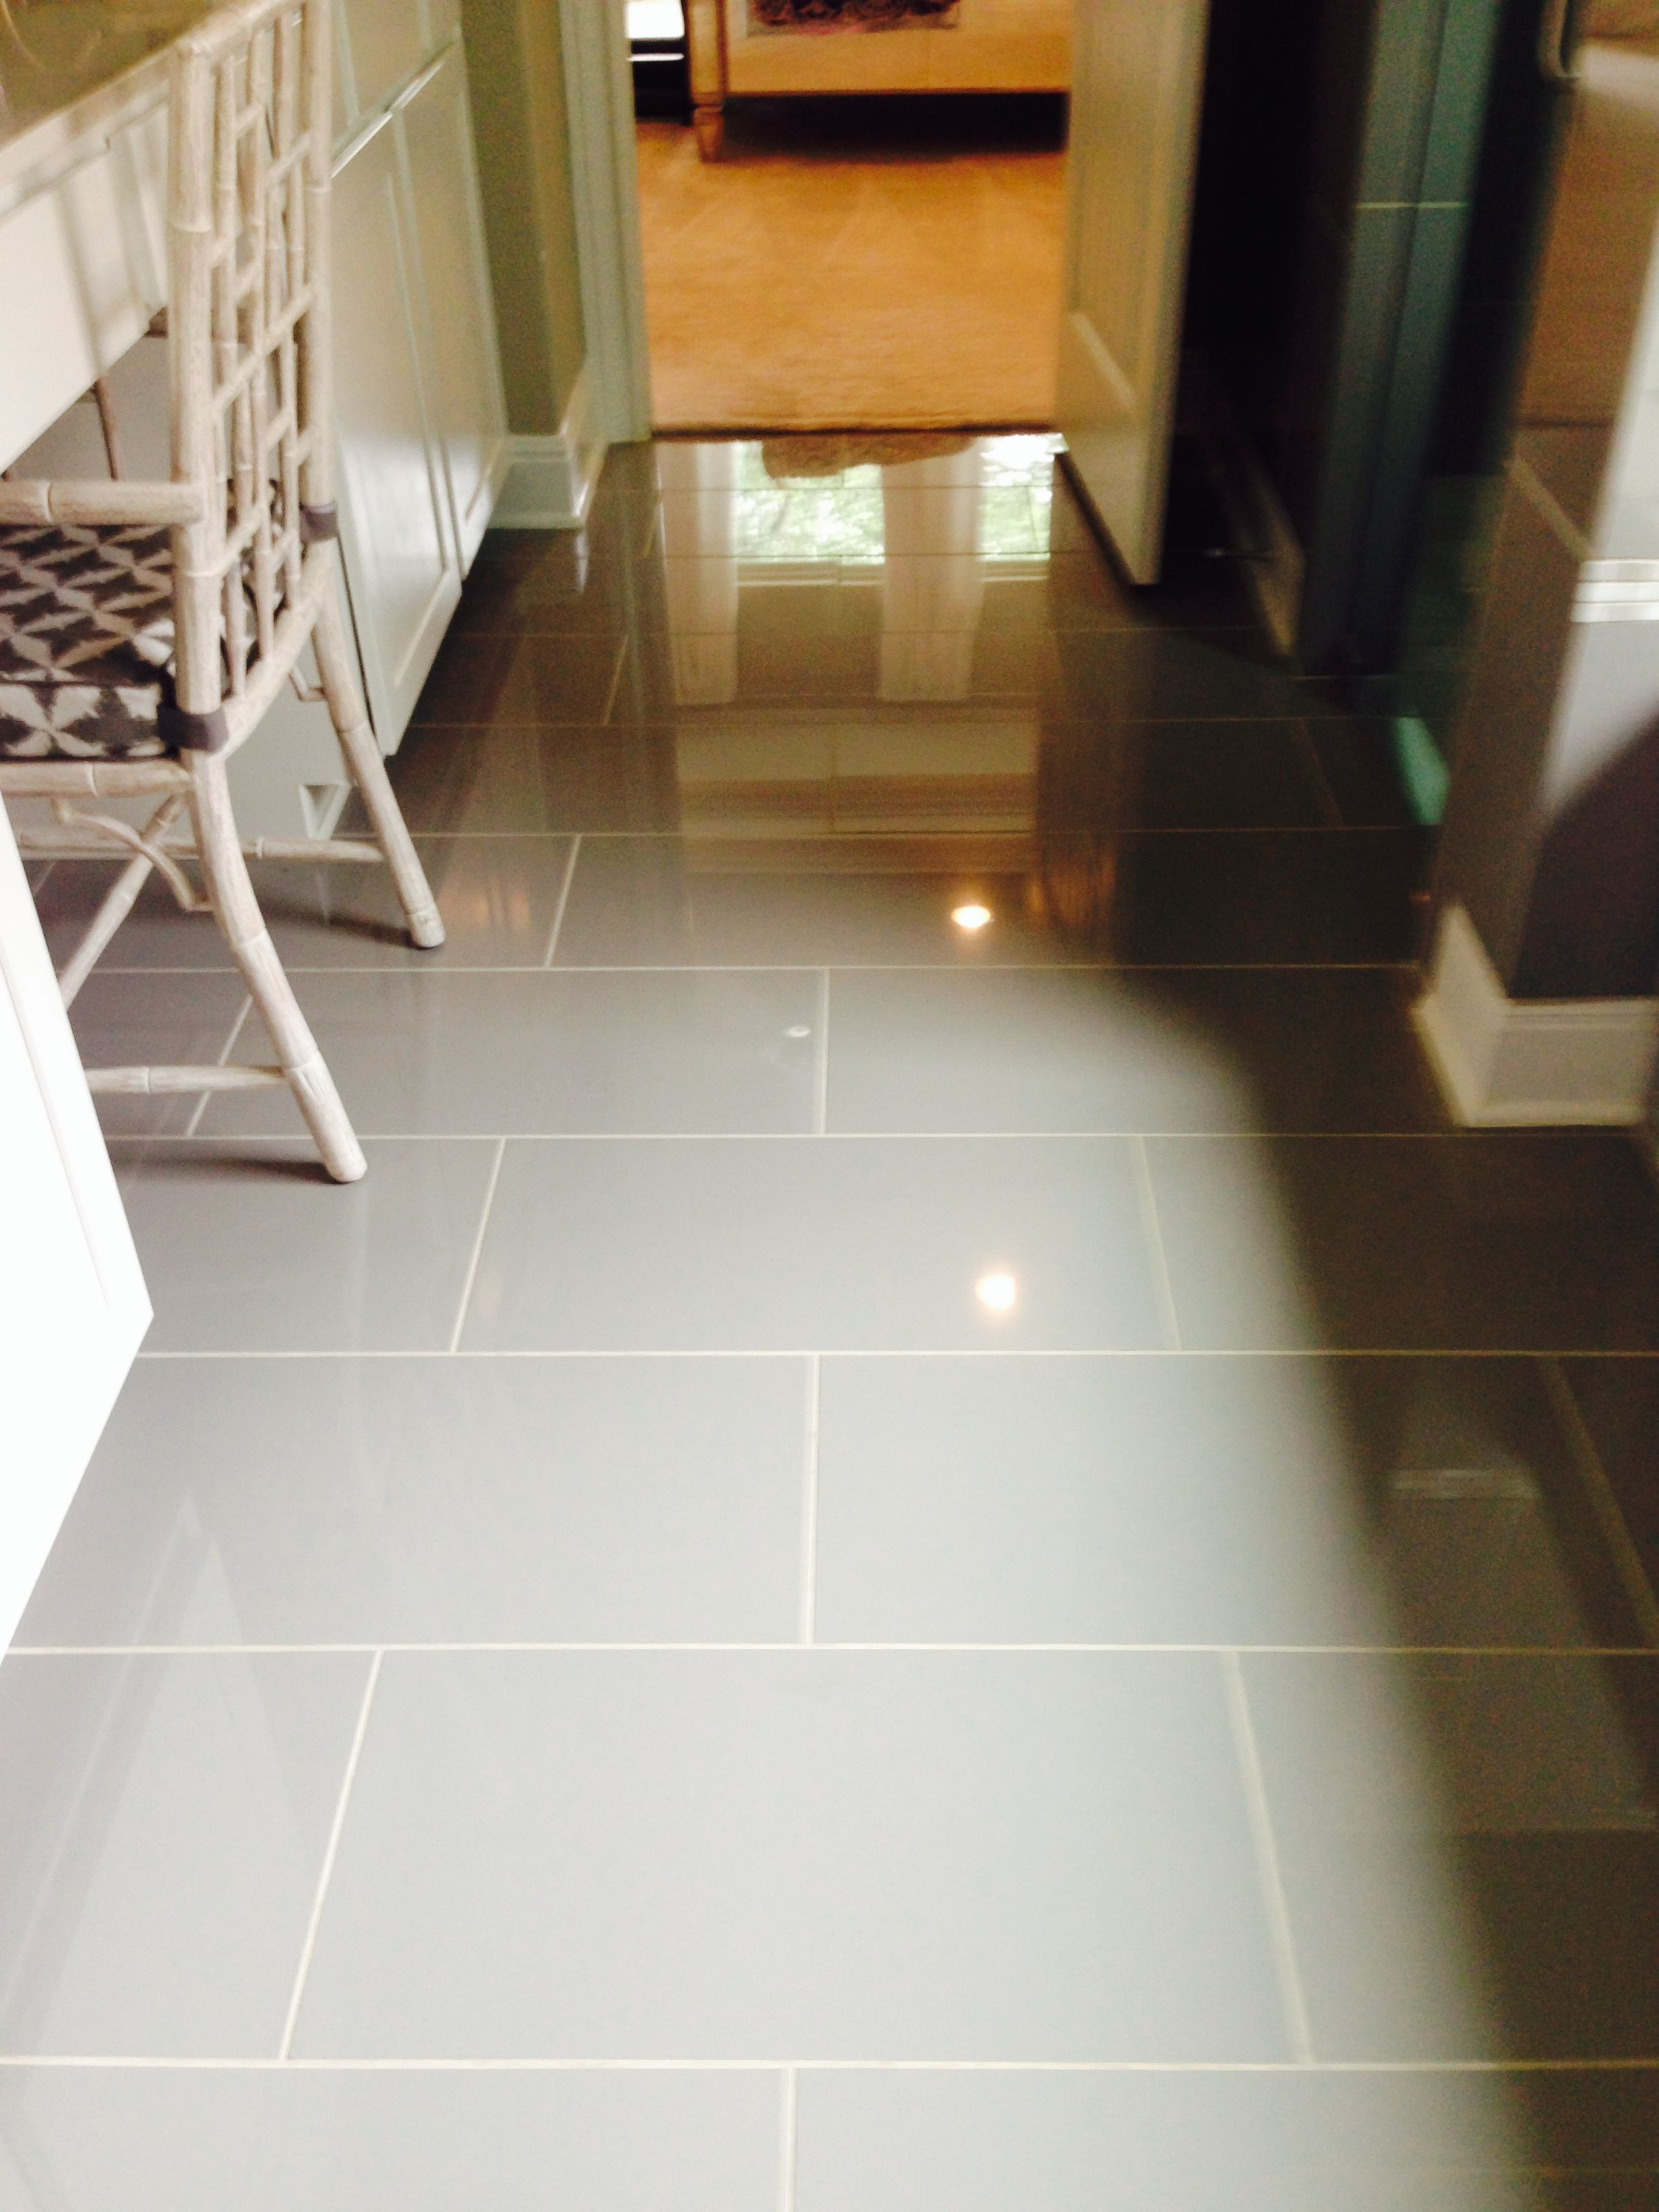 12x24 High Gloss Porcelain Tile